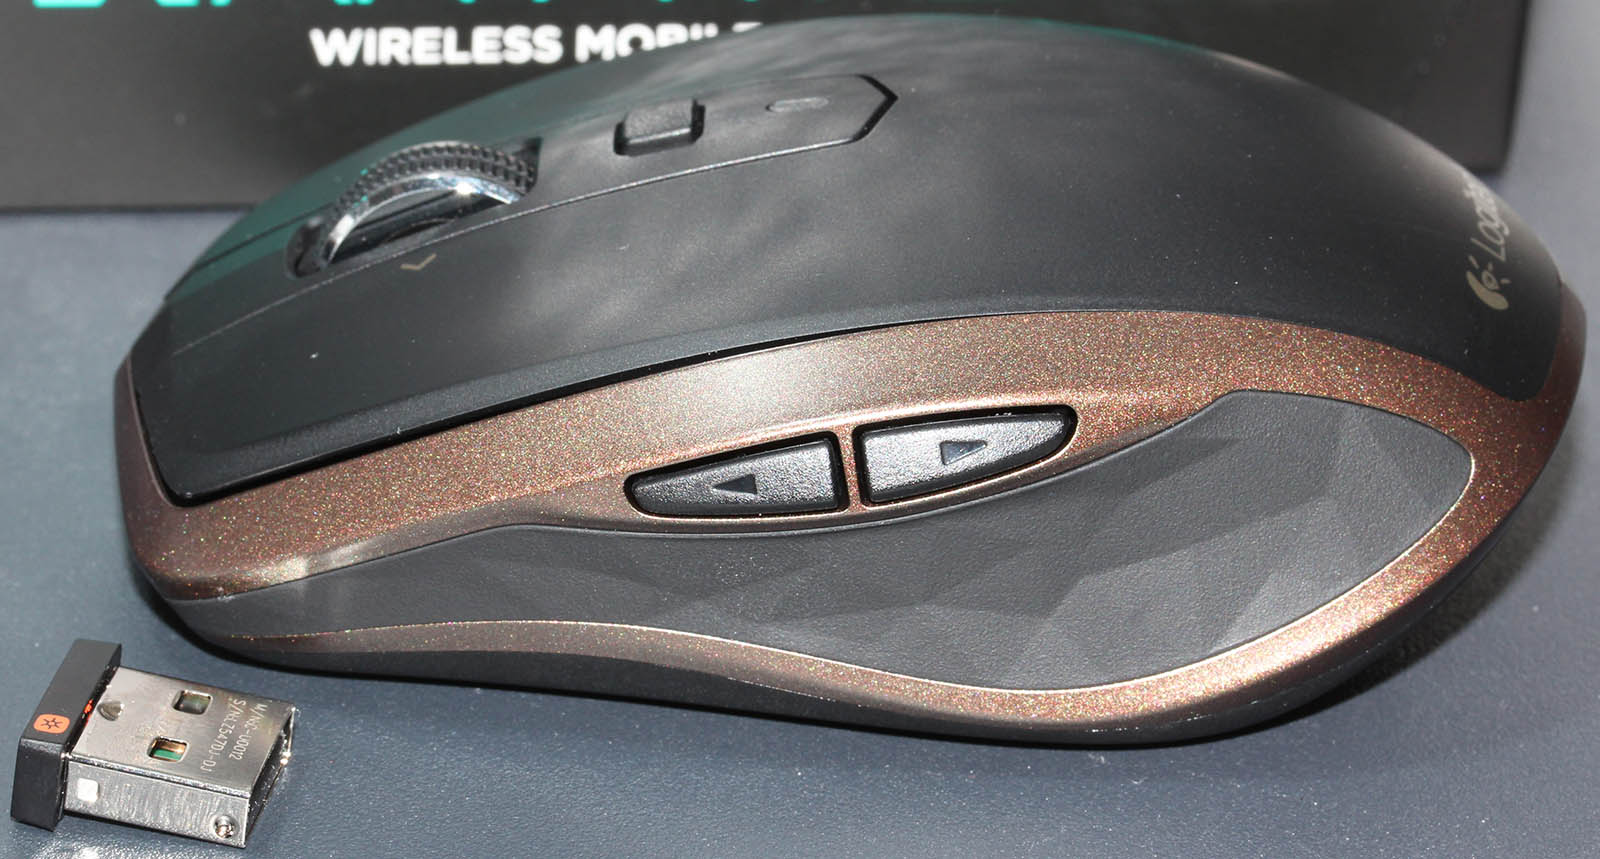 Logitech MX Anywhere 2 - Best mouse ever? - Hacker's ramblings